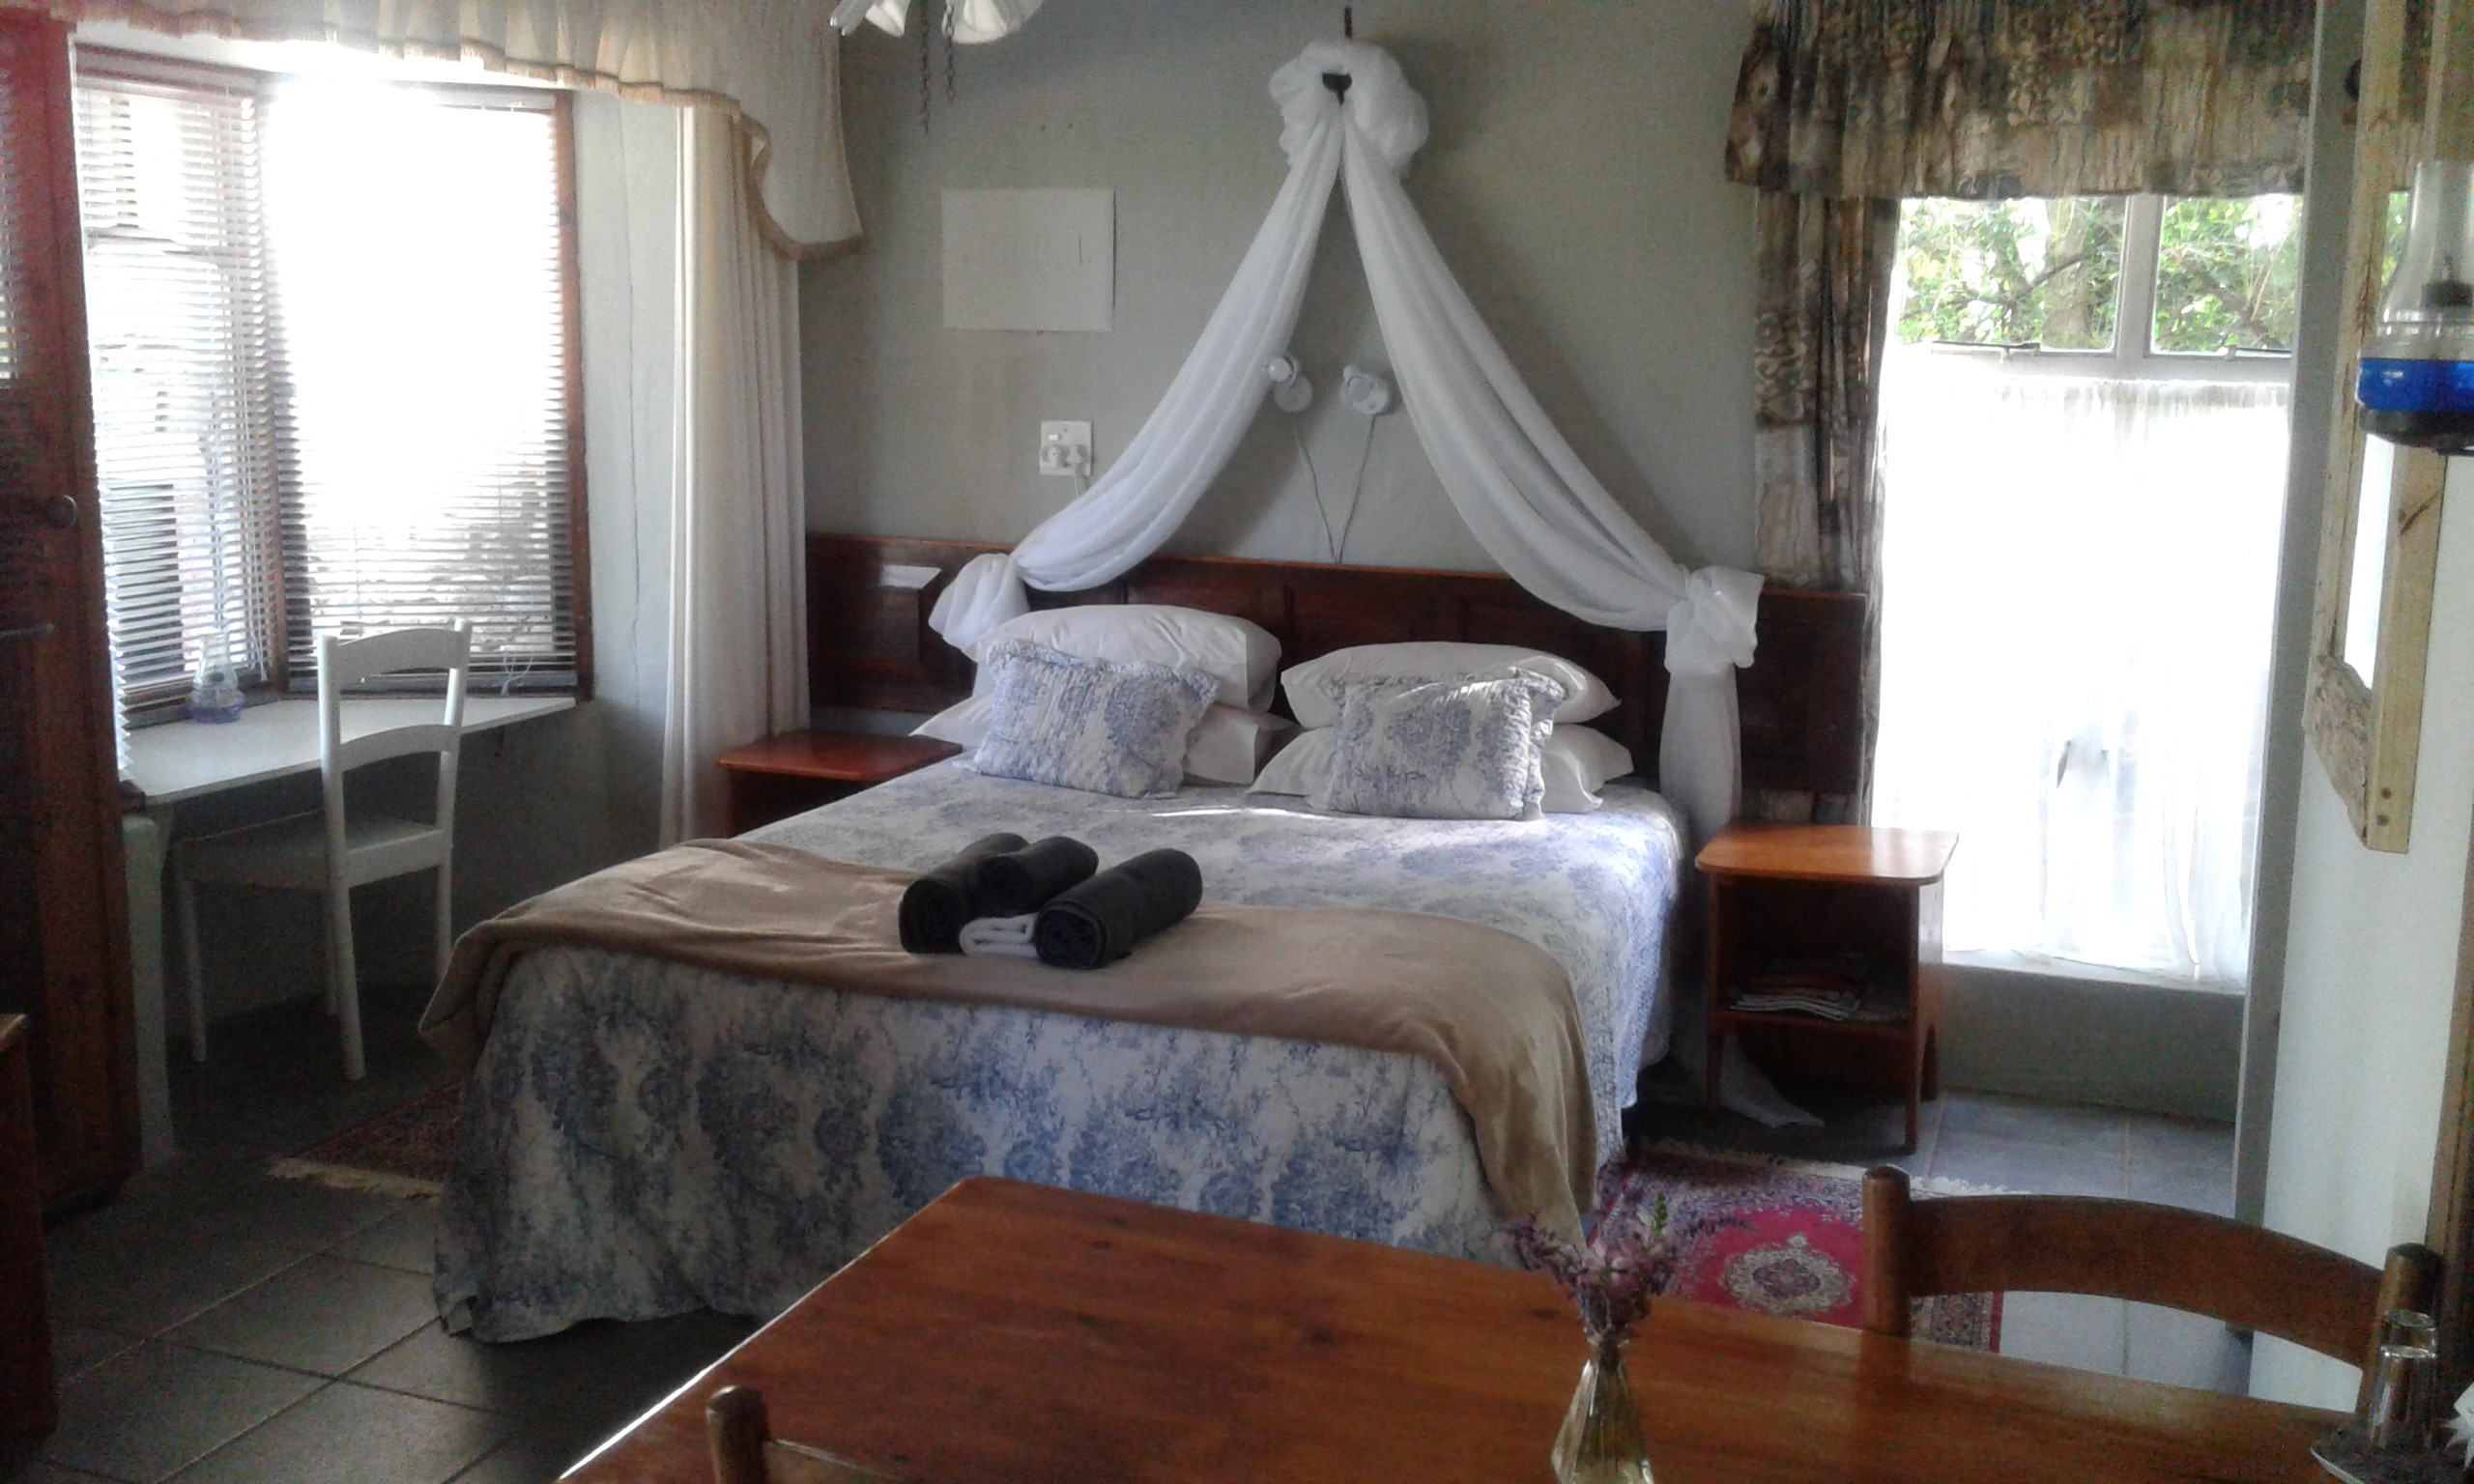 Leafy Lane Self Catering Howick Self catering Reviews